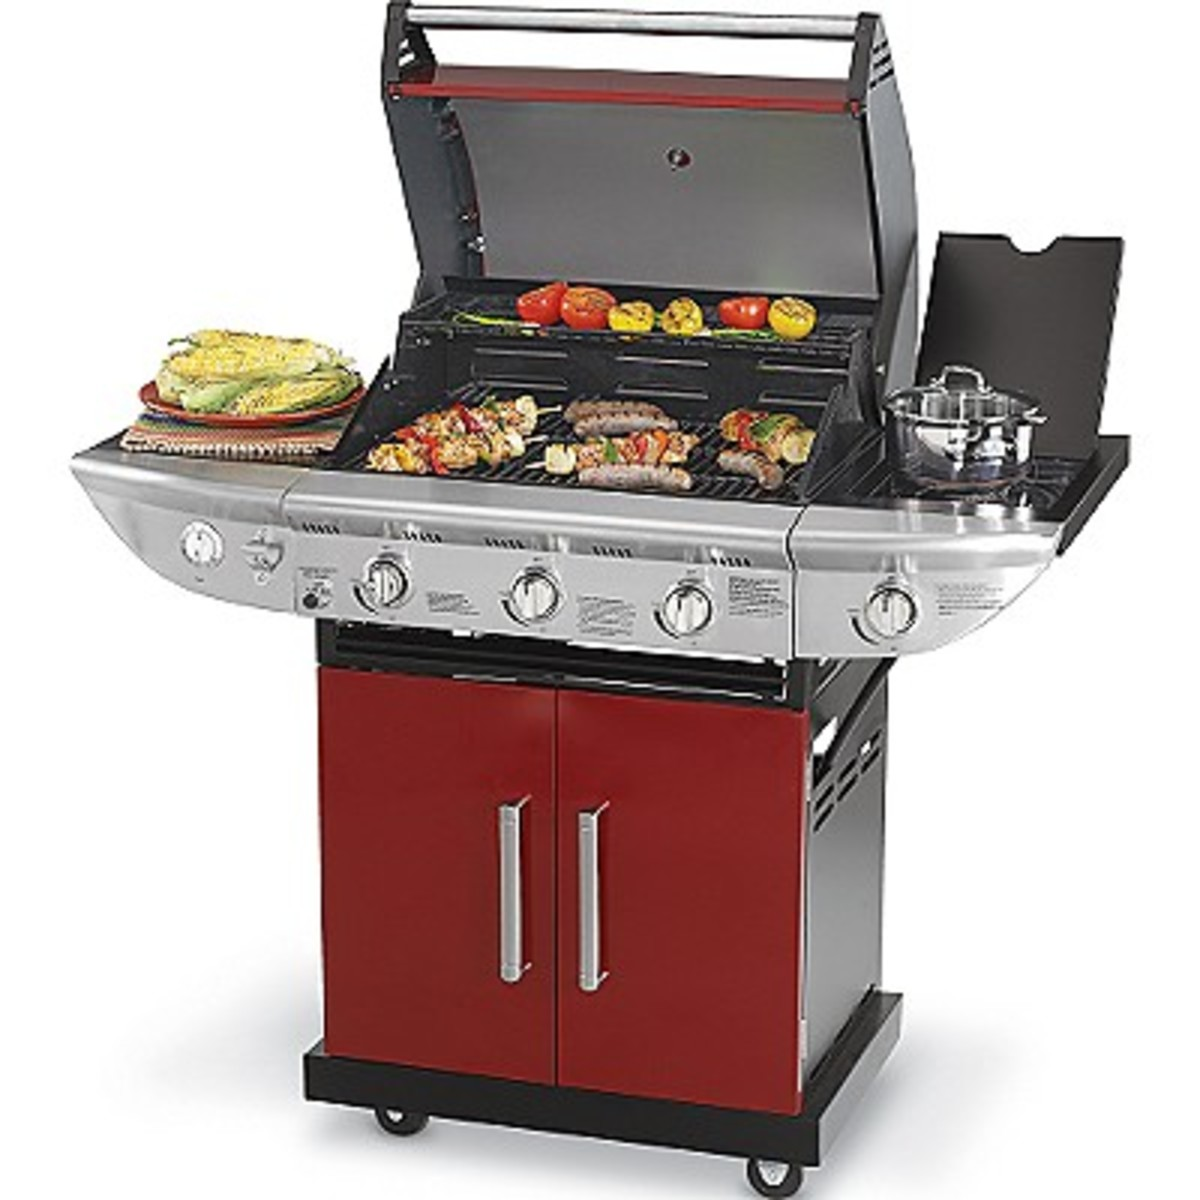 Kenmore Barbeque Grills At Sears And Replacement Parts For